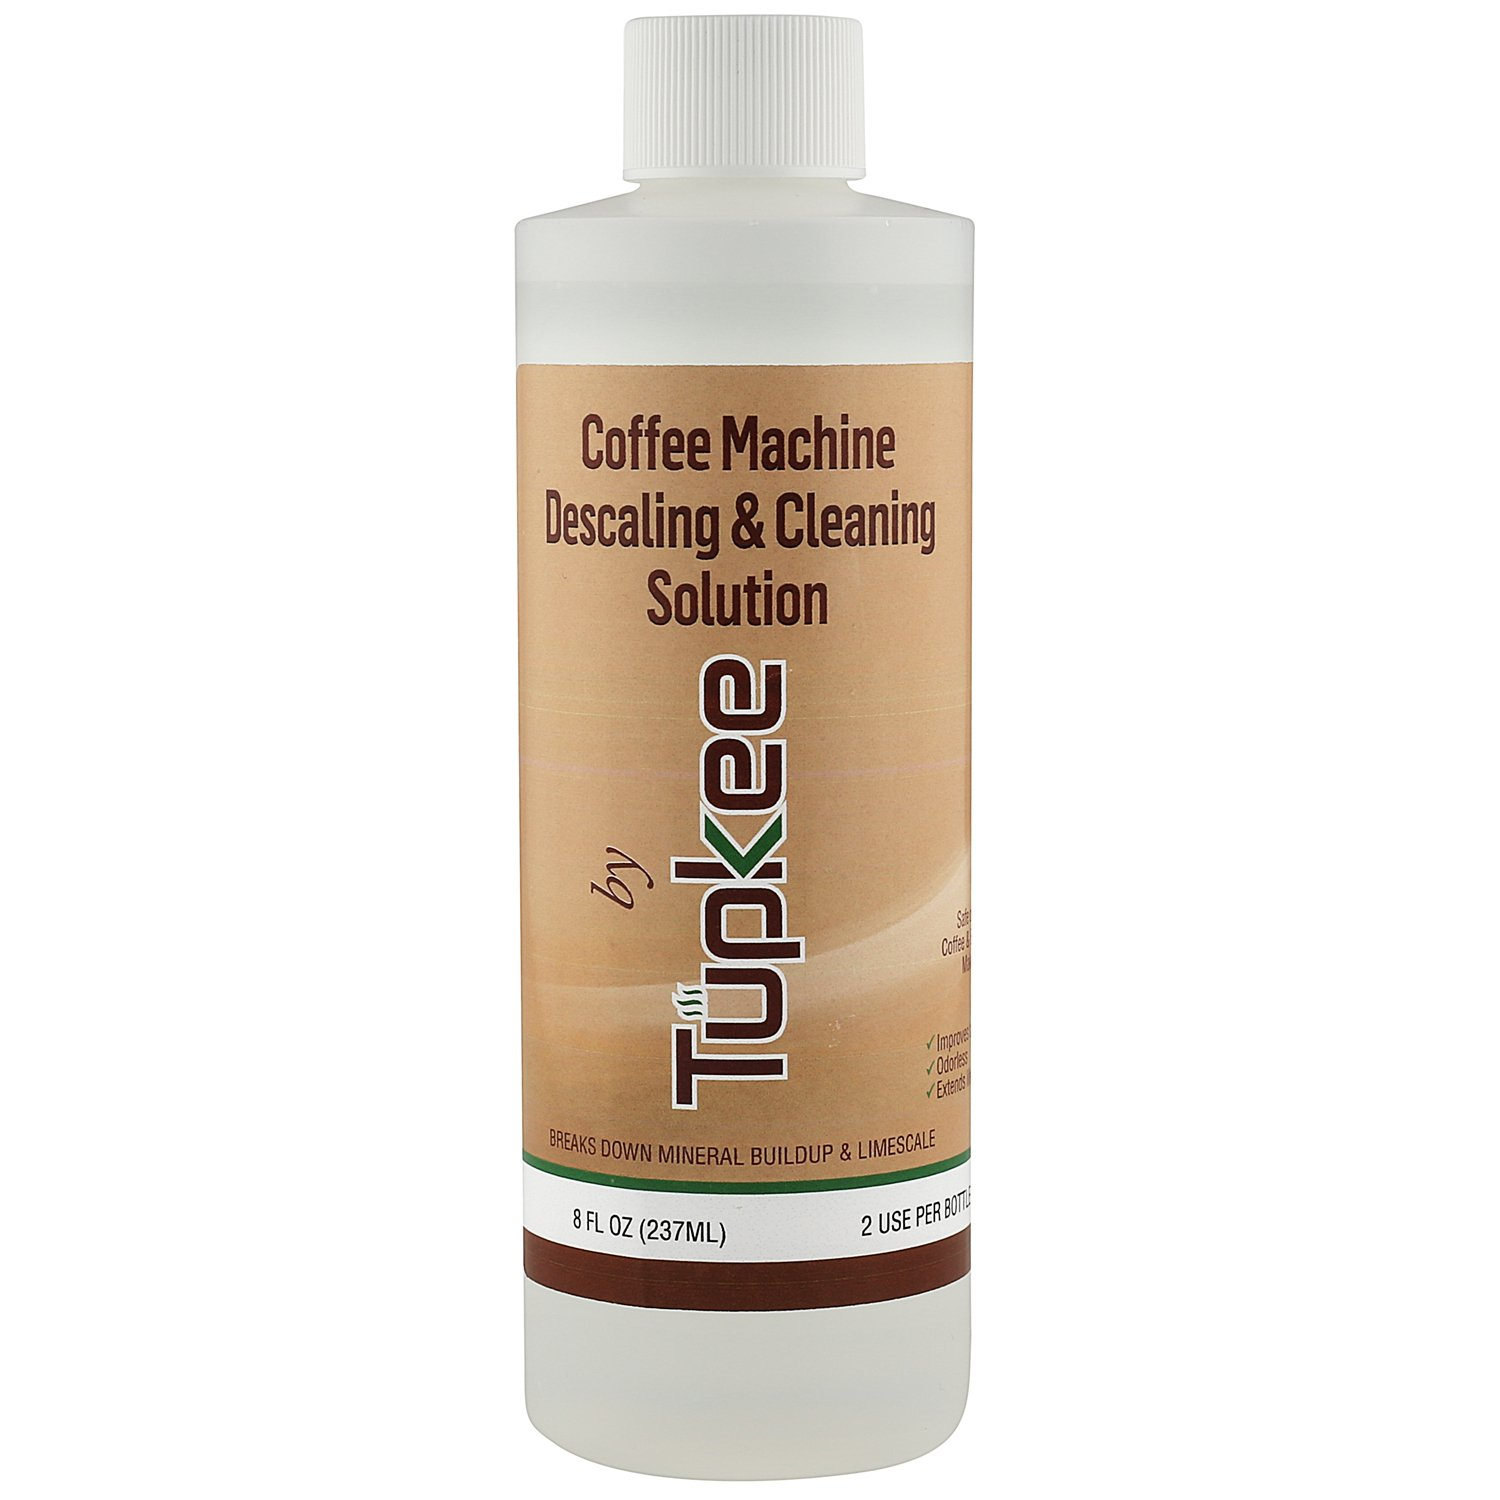 Tupkee Coffee Machine Descaling Solution – Universal, For Drip Coffee Maker, nespresso, delonghi, and Keurig Coffee Machines Descaler & Cleaning Solution, Breaks Down Mineral Buildup and Limescale